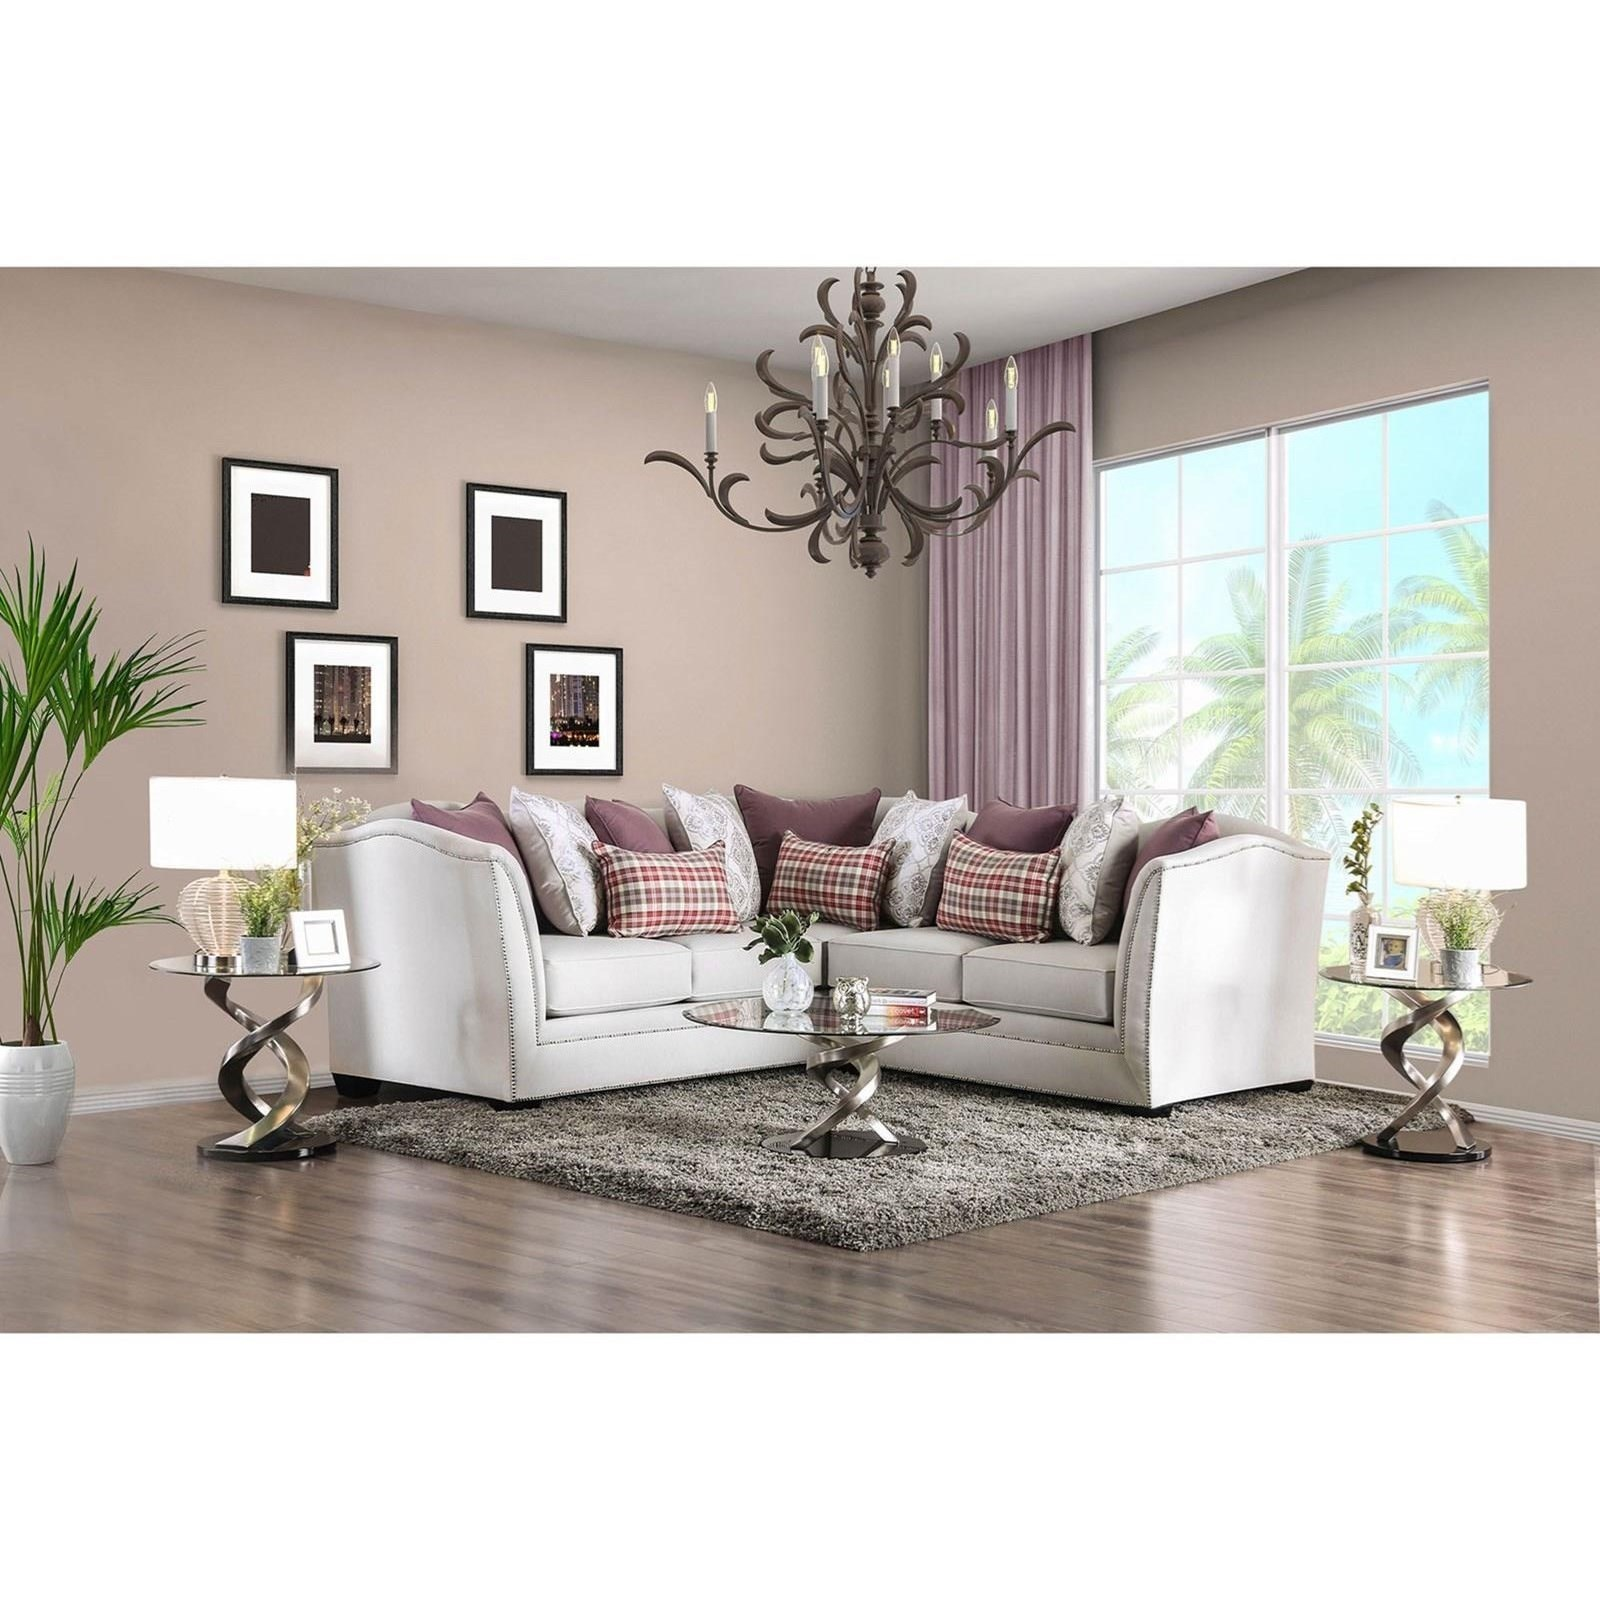 Furniture of America Kizzy Transitional Sectional Sofa with Nailhead ...